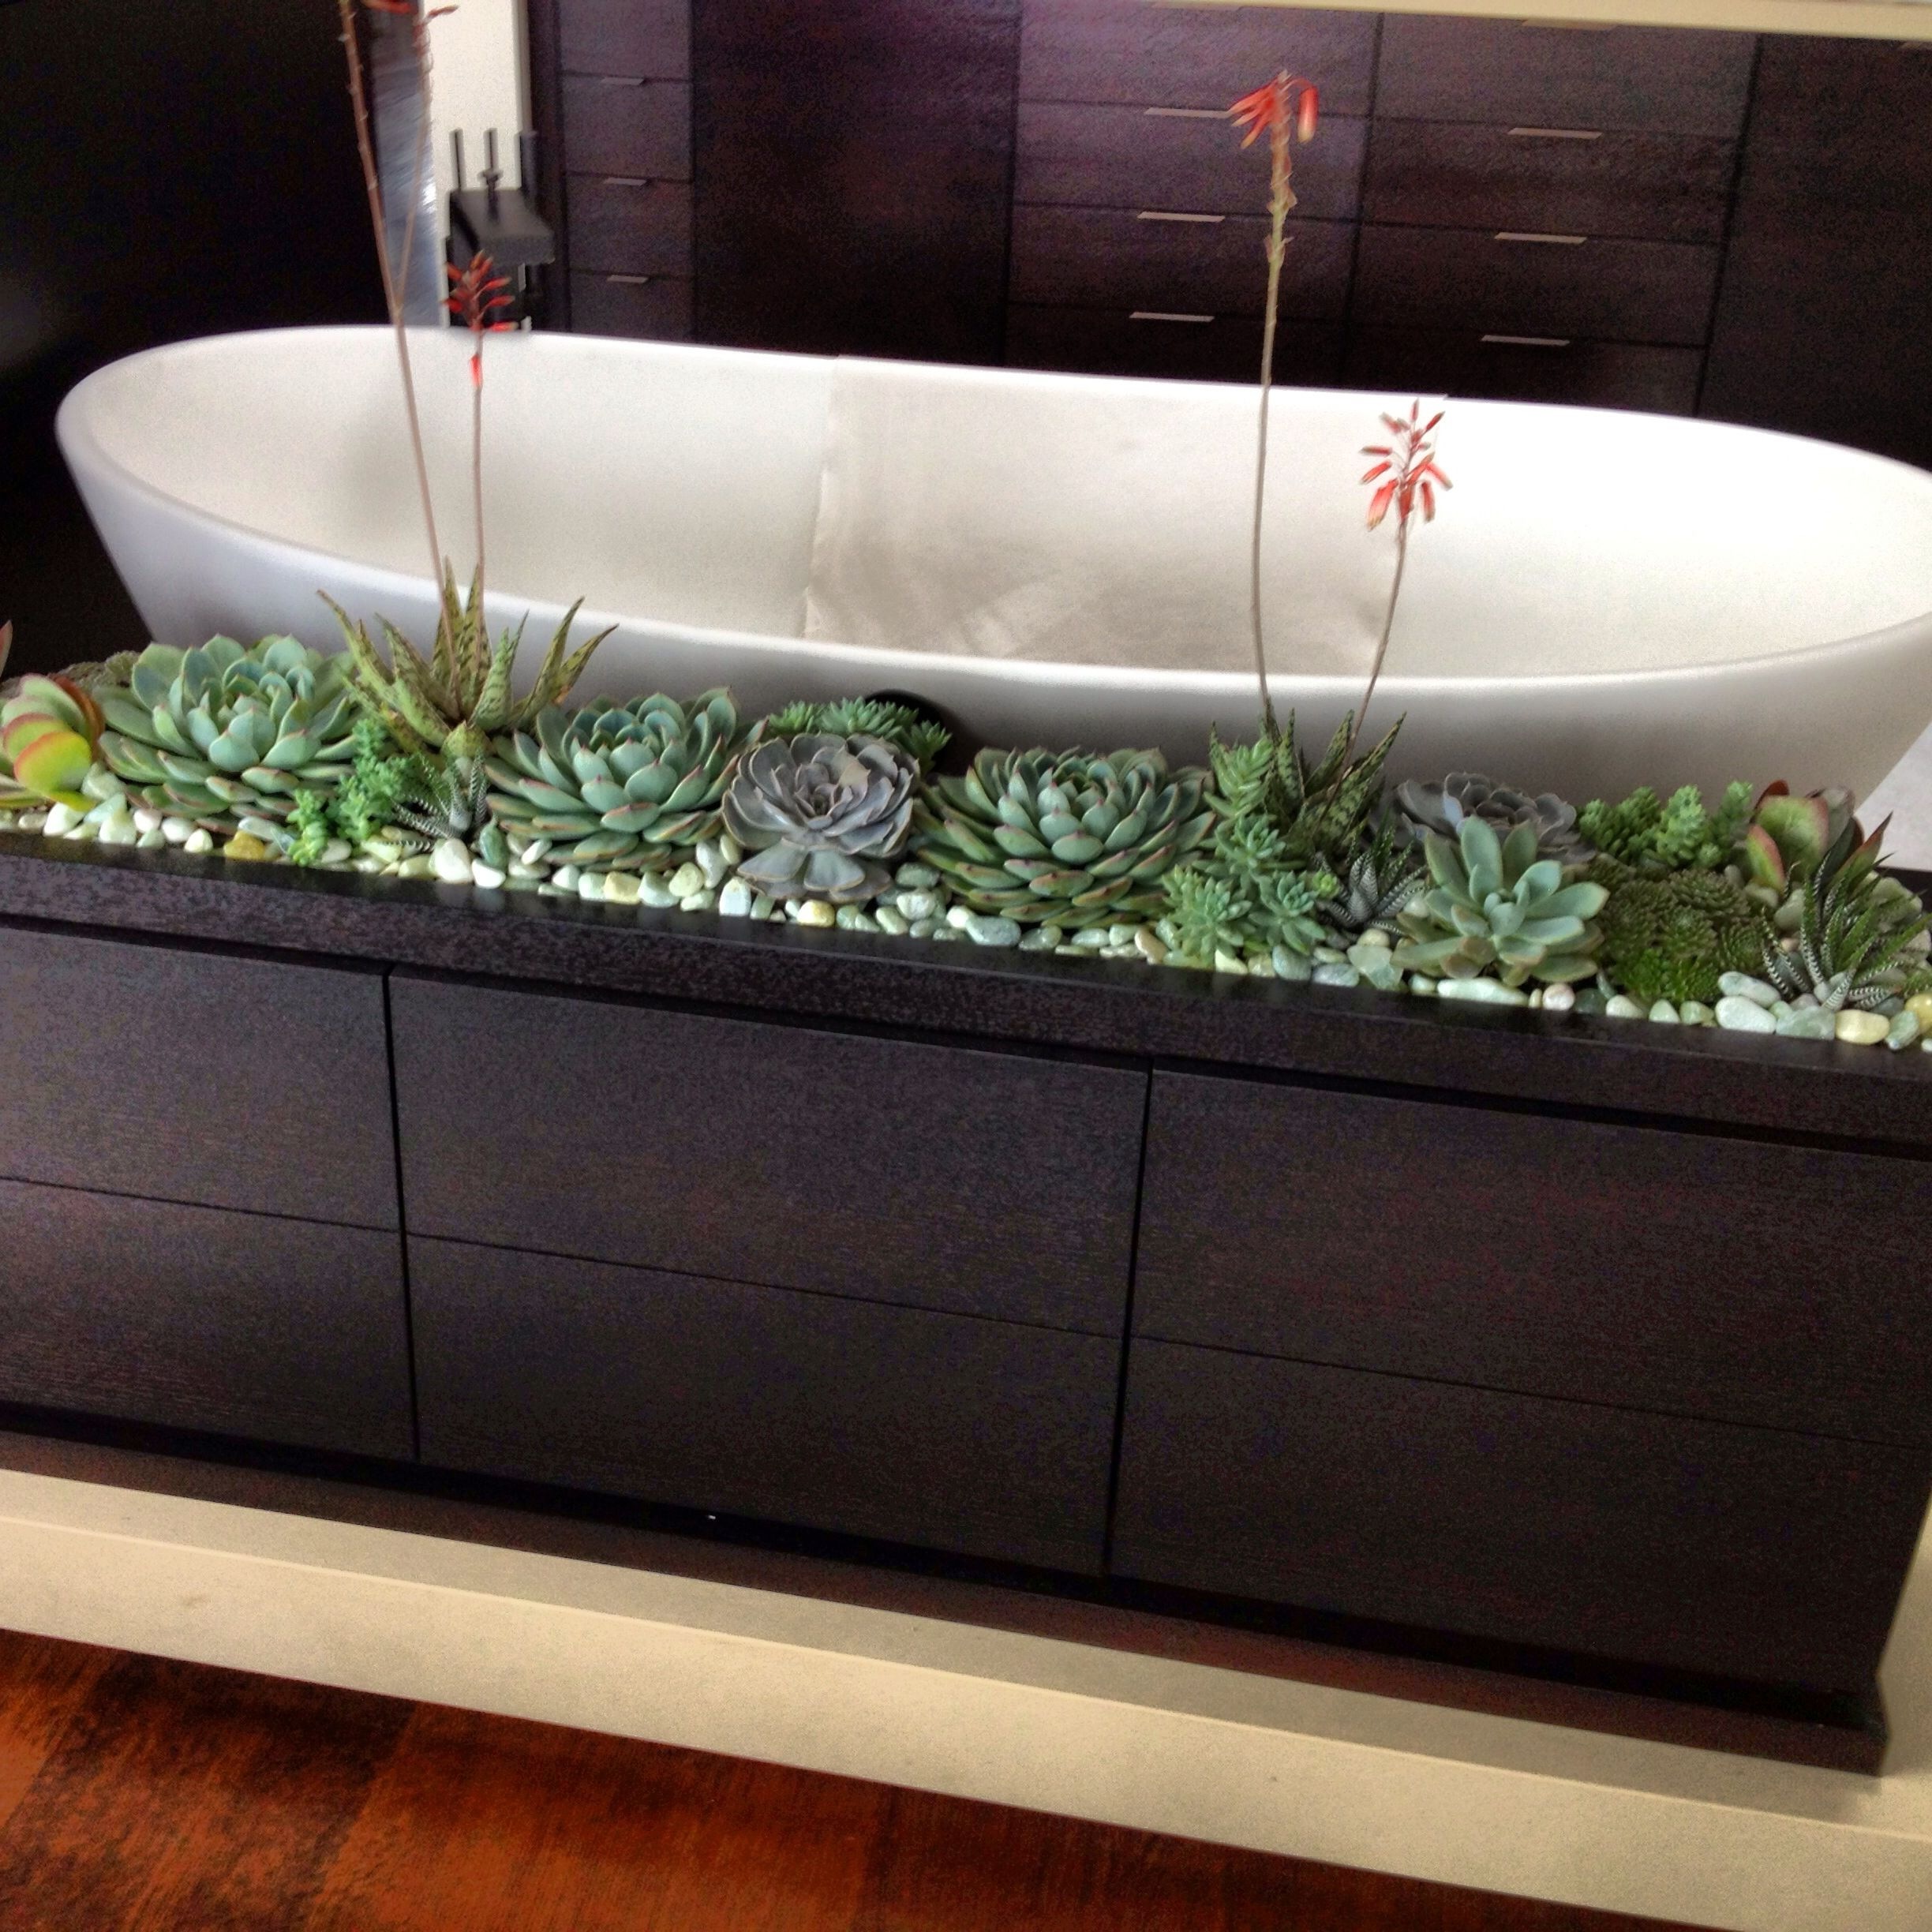 Succulent Planter In A Bathroom Great Idea Thank You Paul Fenner Farmhouse Bathroom Decor Bathroom Decor Bathroom Organization Diy